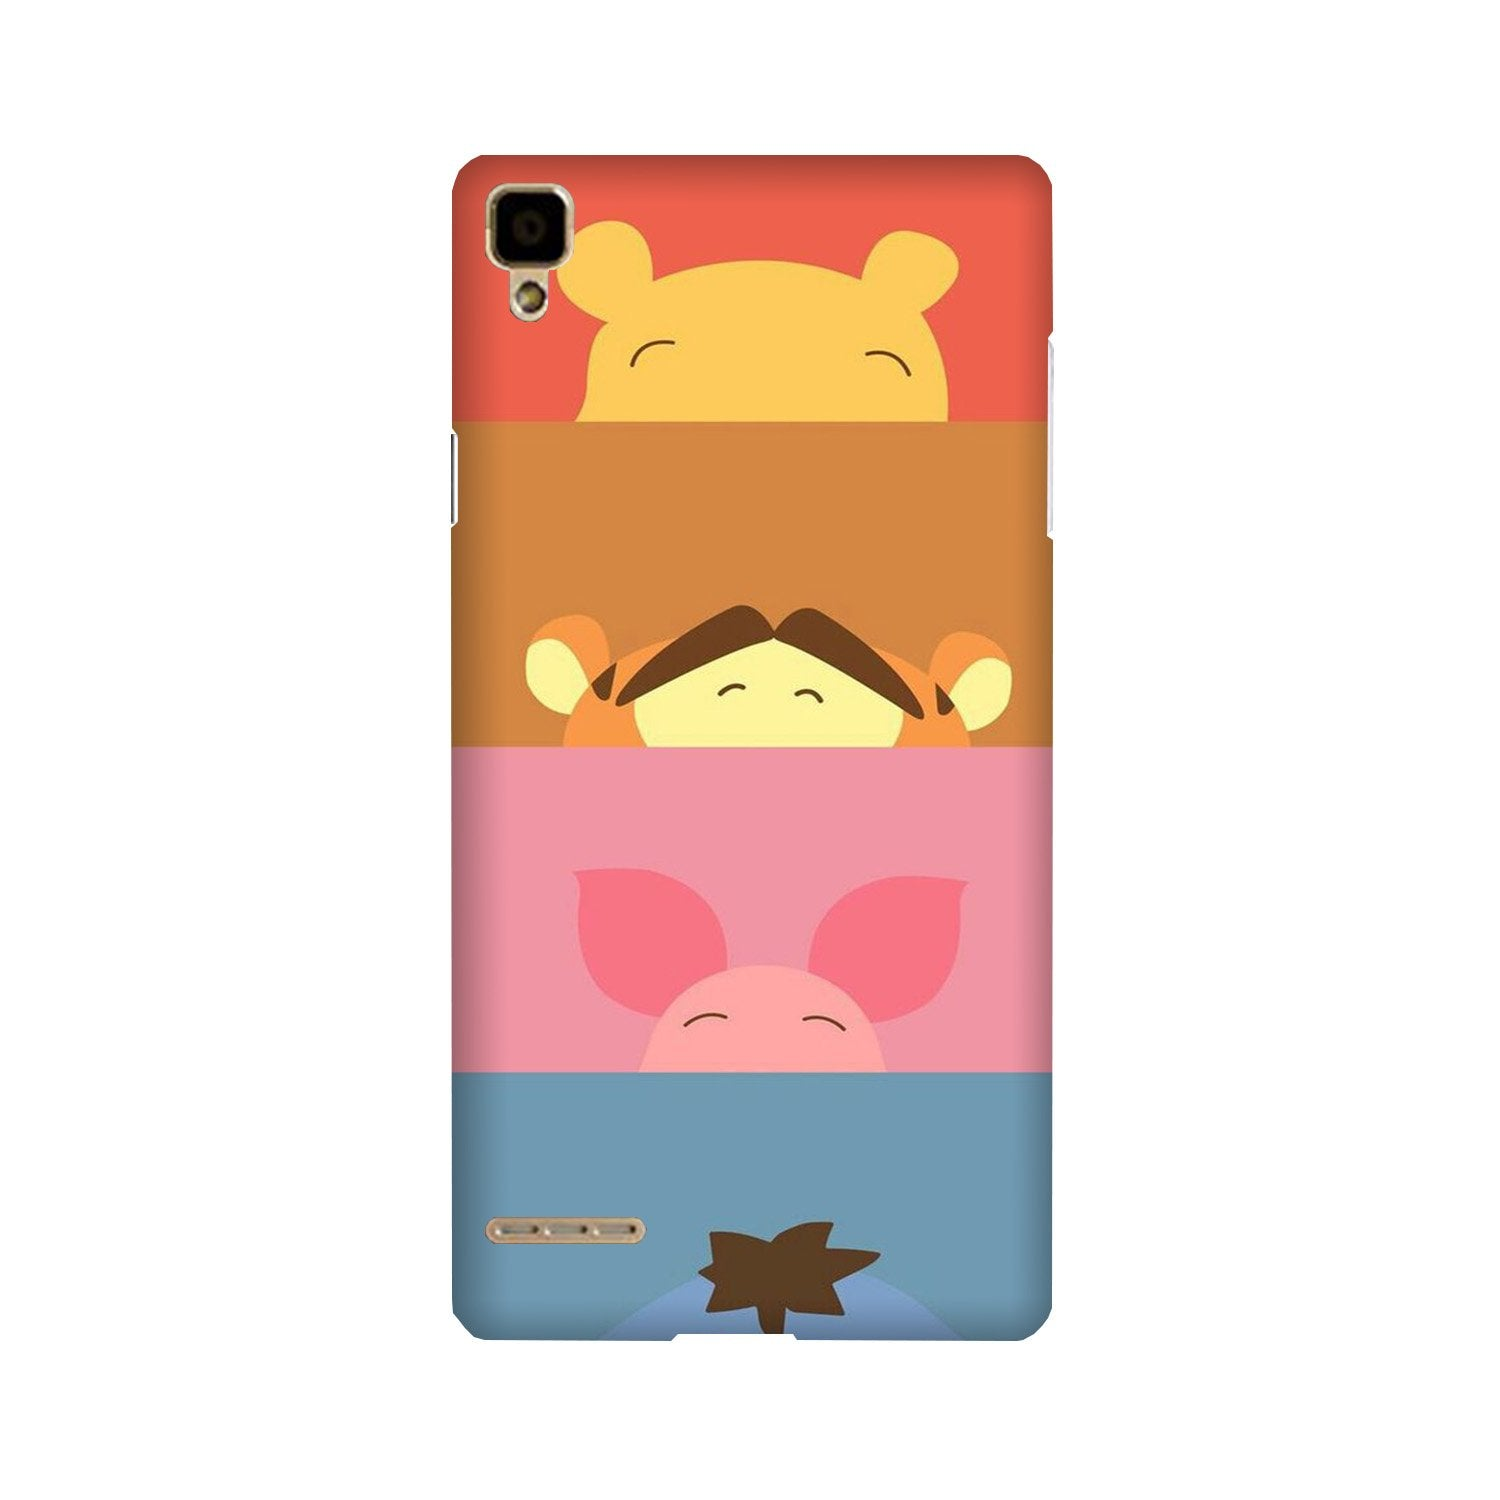 Cartoon Case for Oppo F1 (Design - 183)